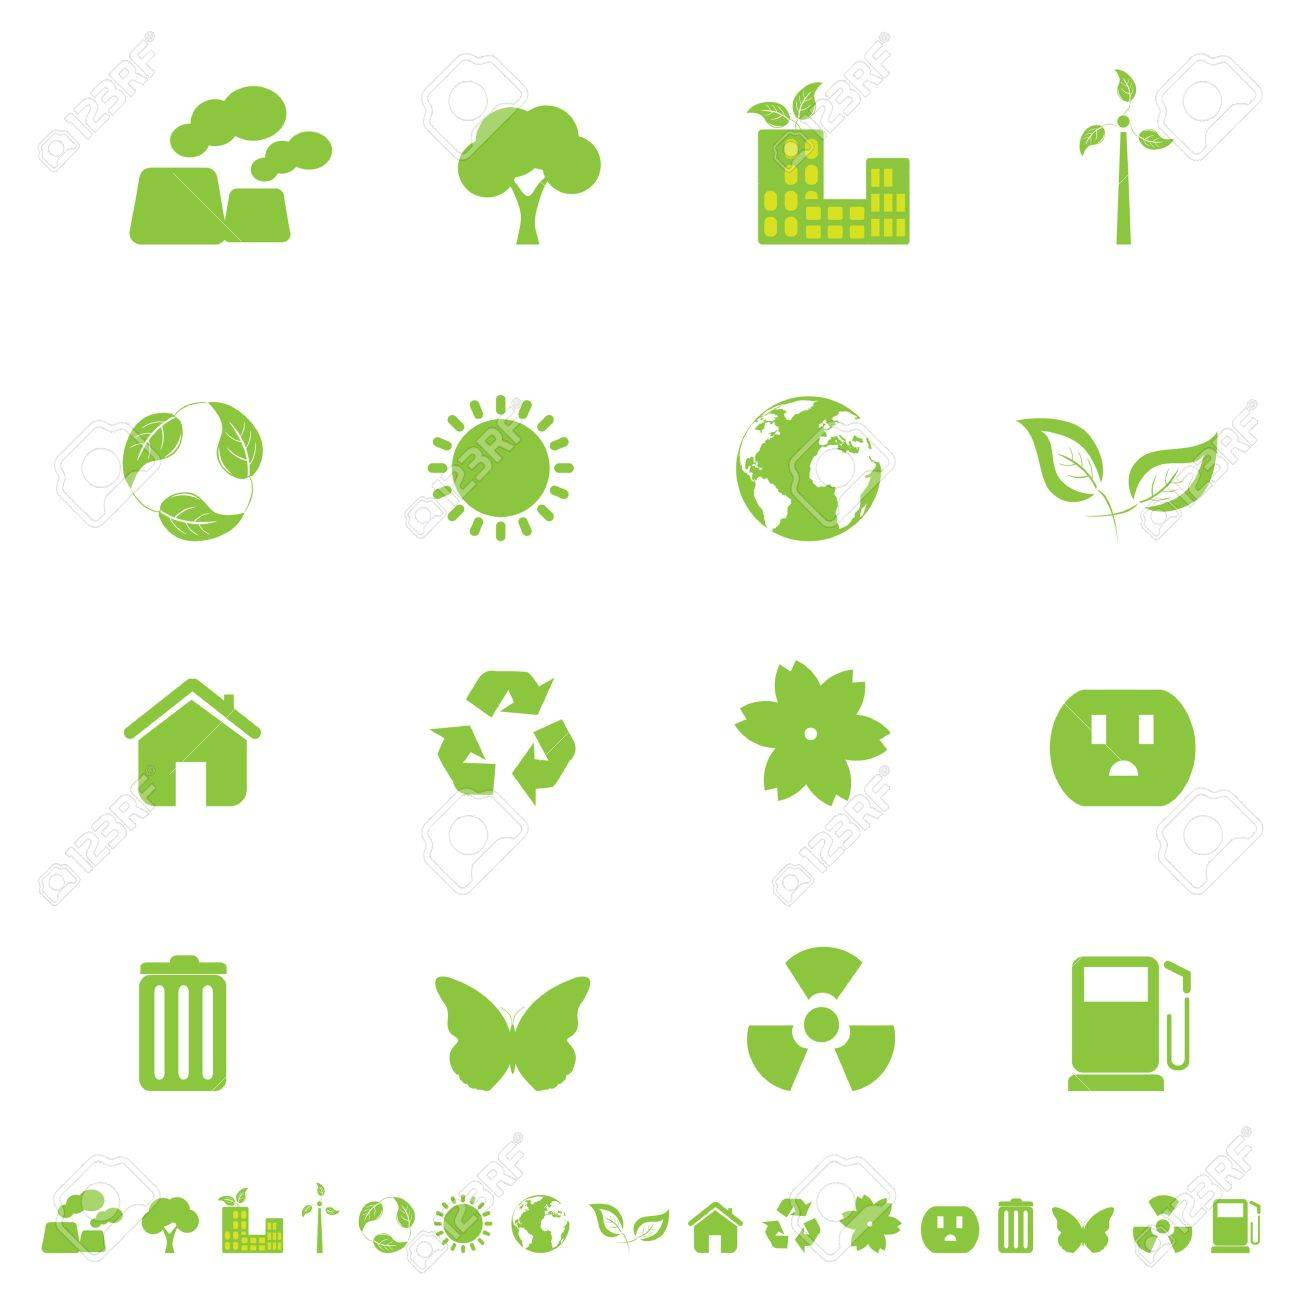 Ecology and clean environment related symbols and objects Stock Vector - 12305380